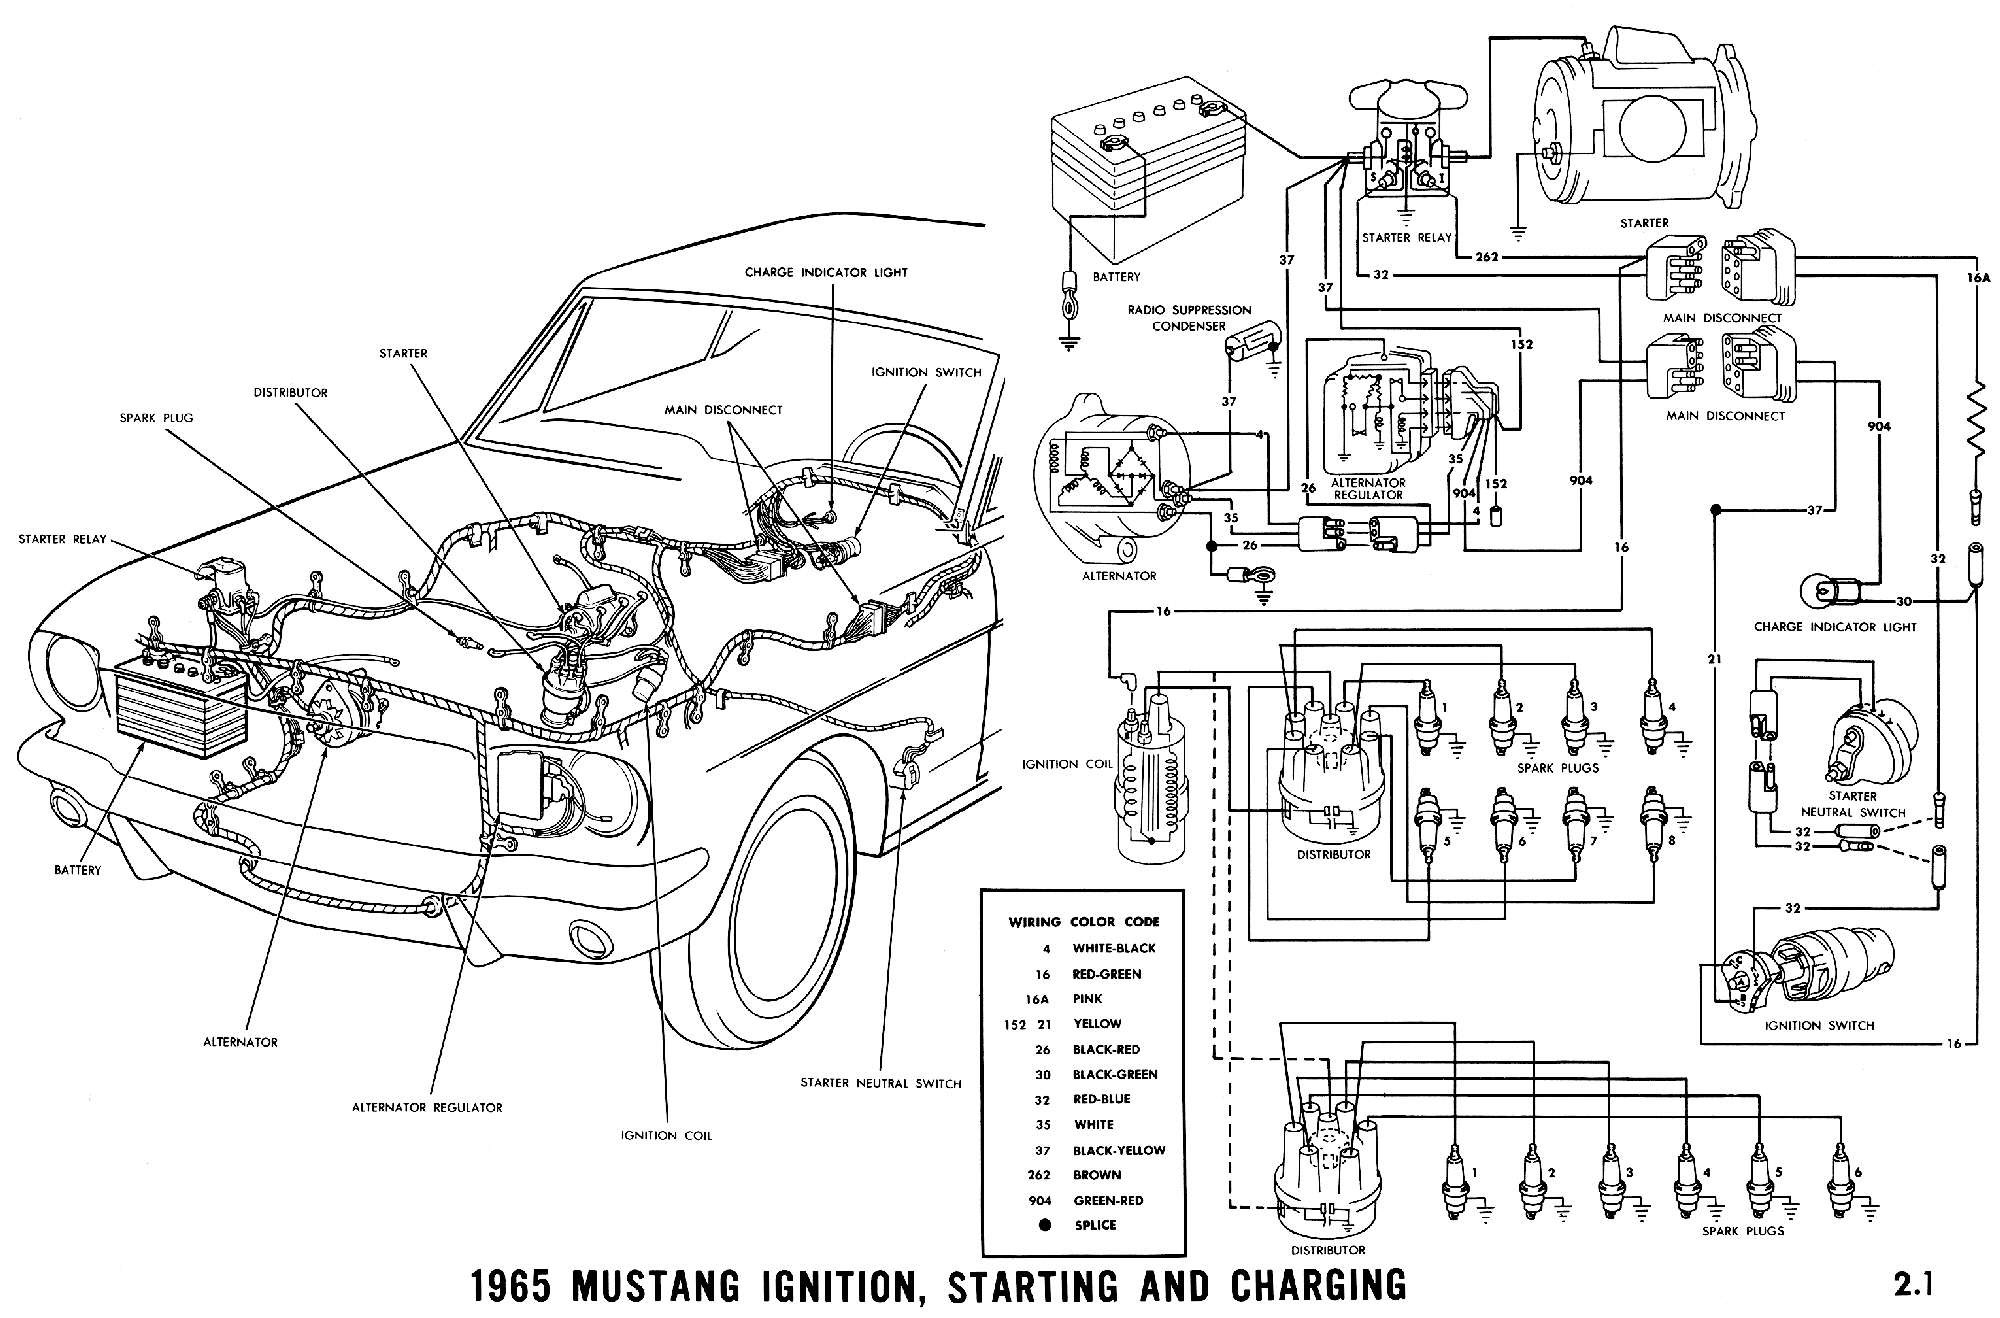 Car Part Diagram 2015 Mustang Engine Diagram Engine Car